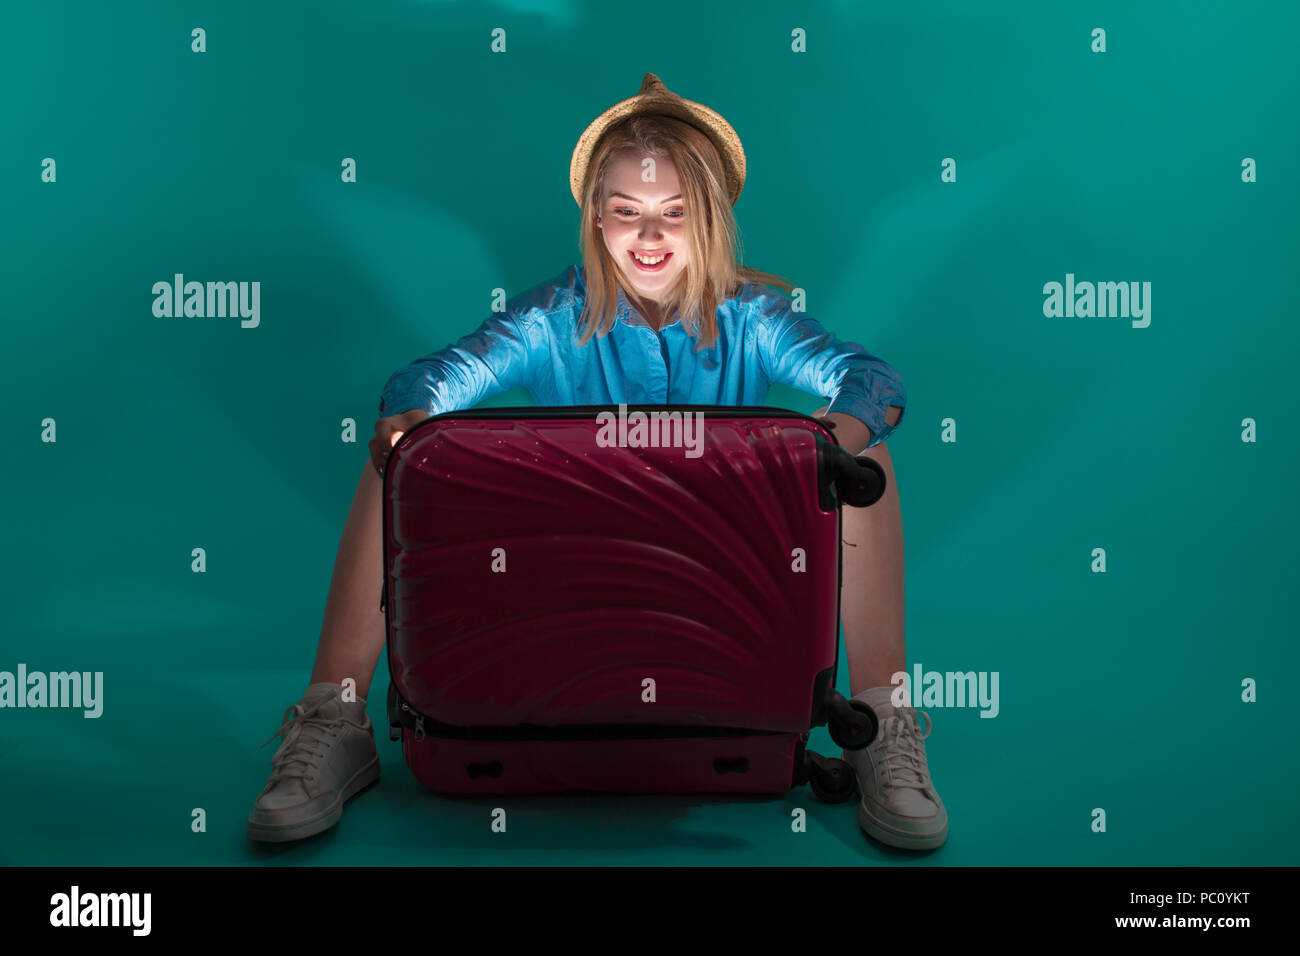 joyful tourist is opening her magic luggage.the light from the baggage.look for outfit at night - Stock Image